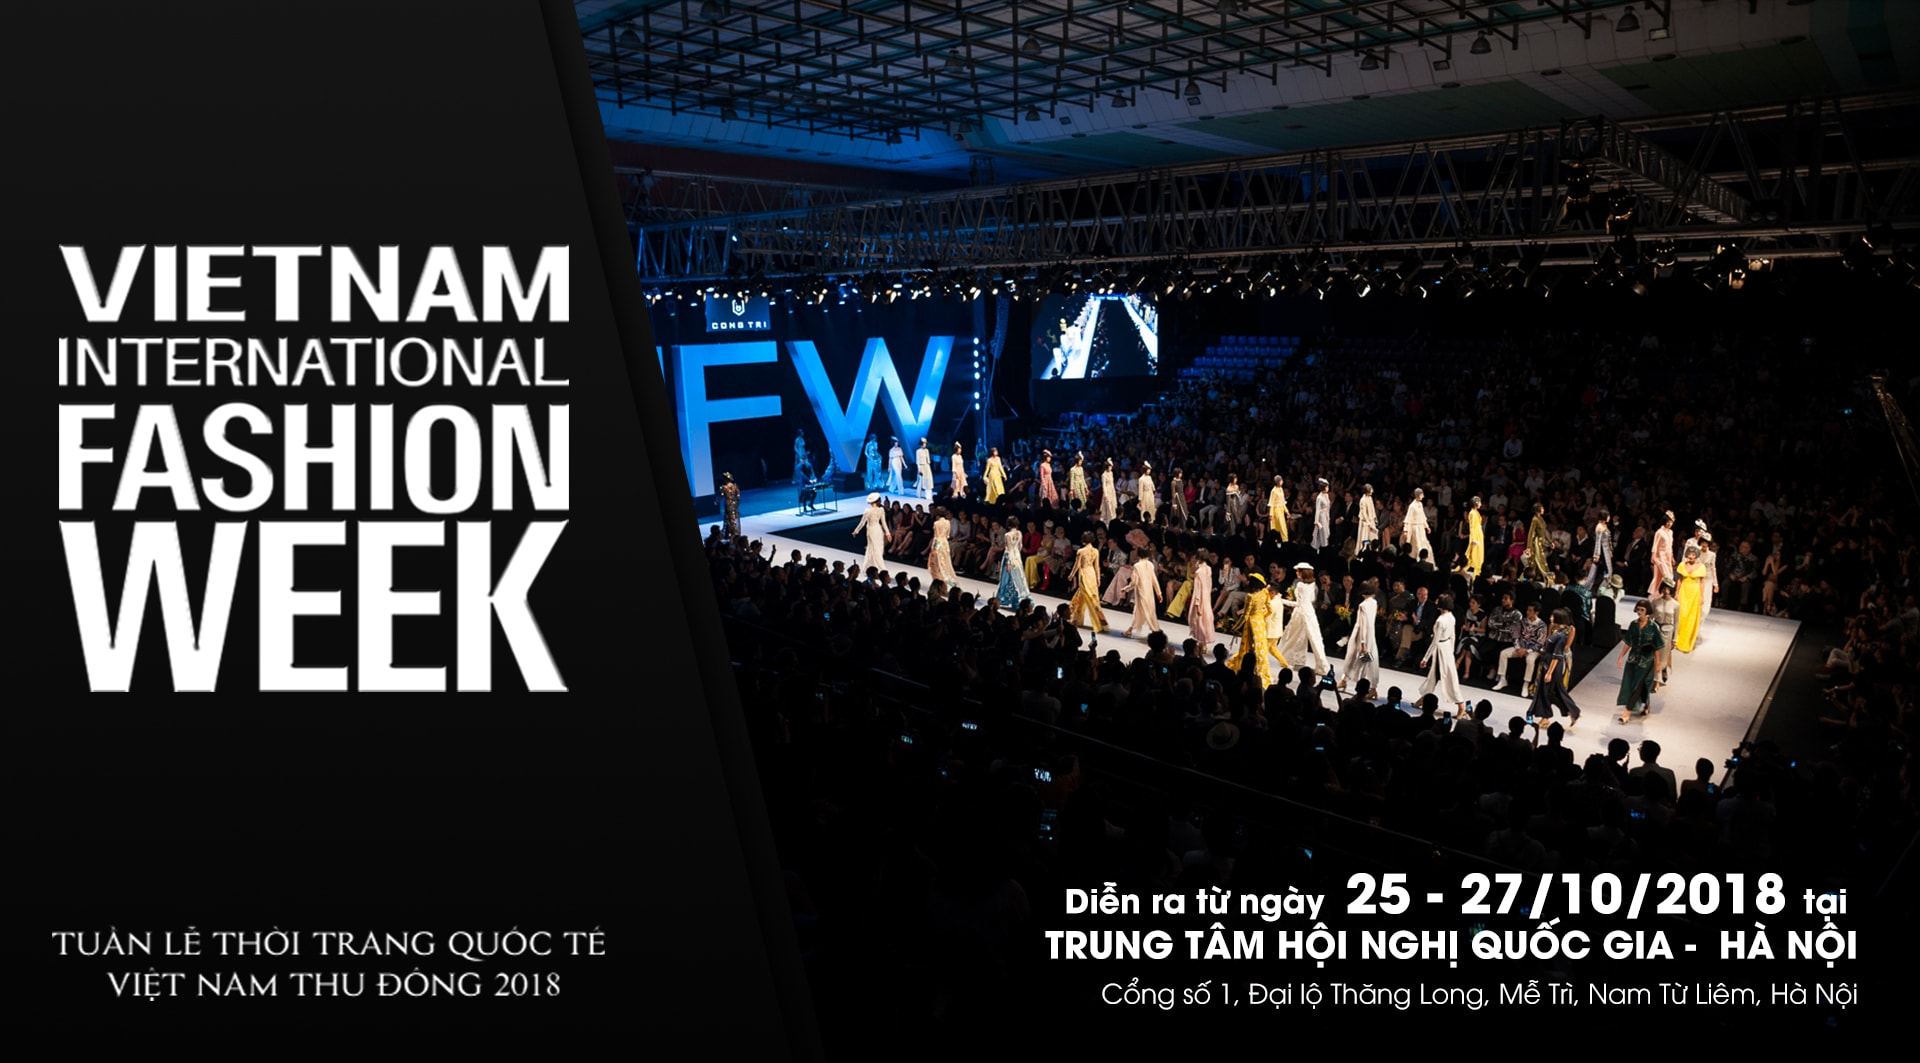 Vietnam International Fashion Week